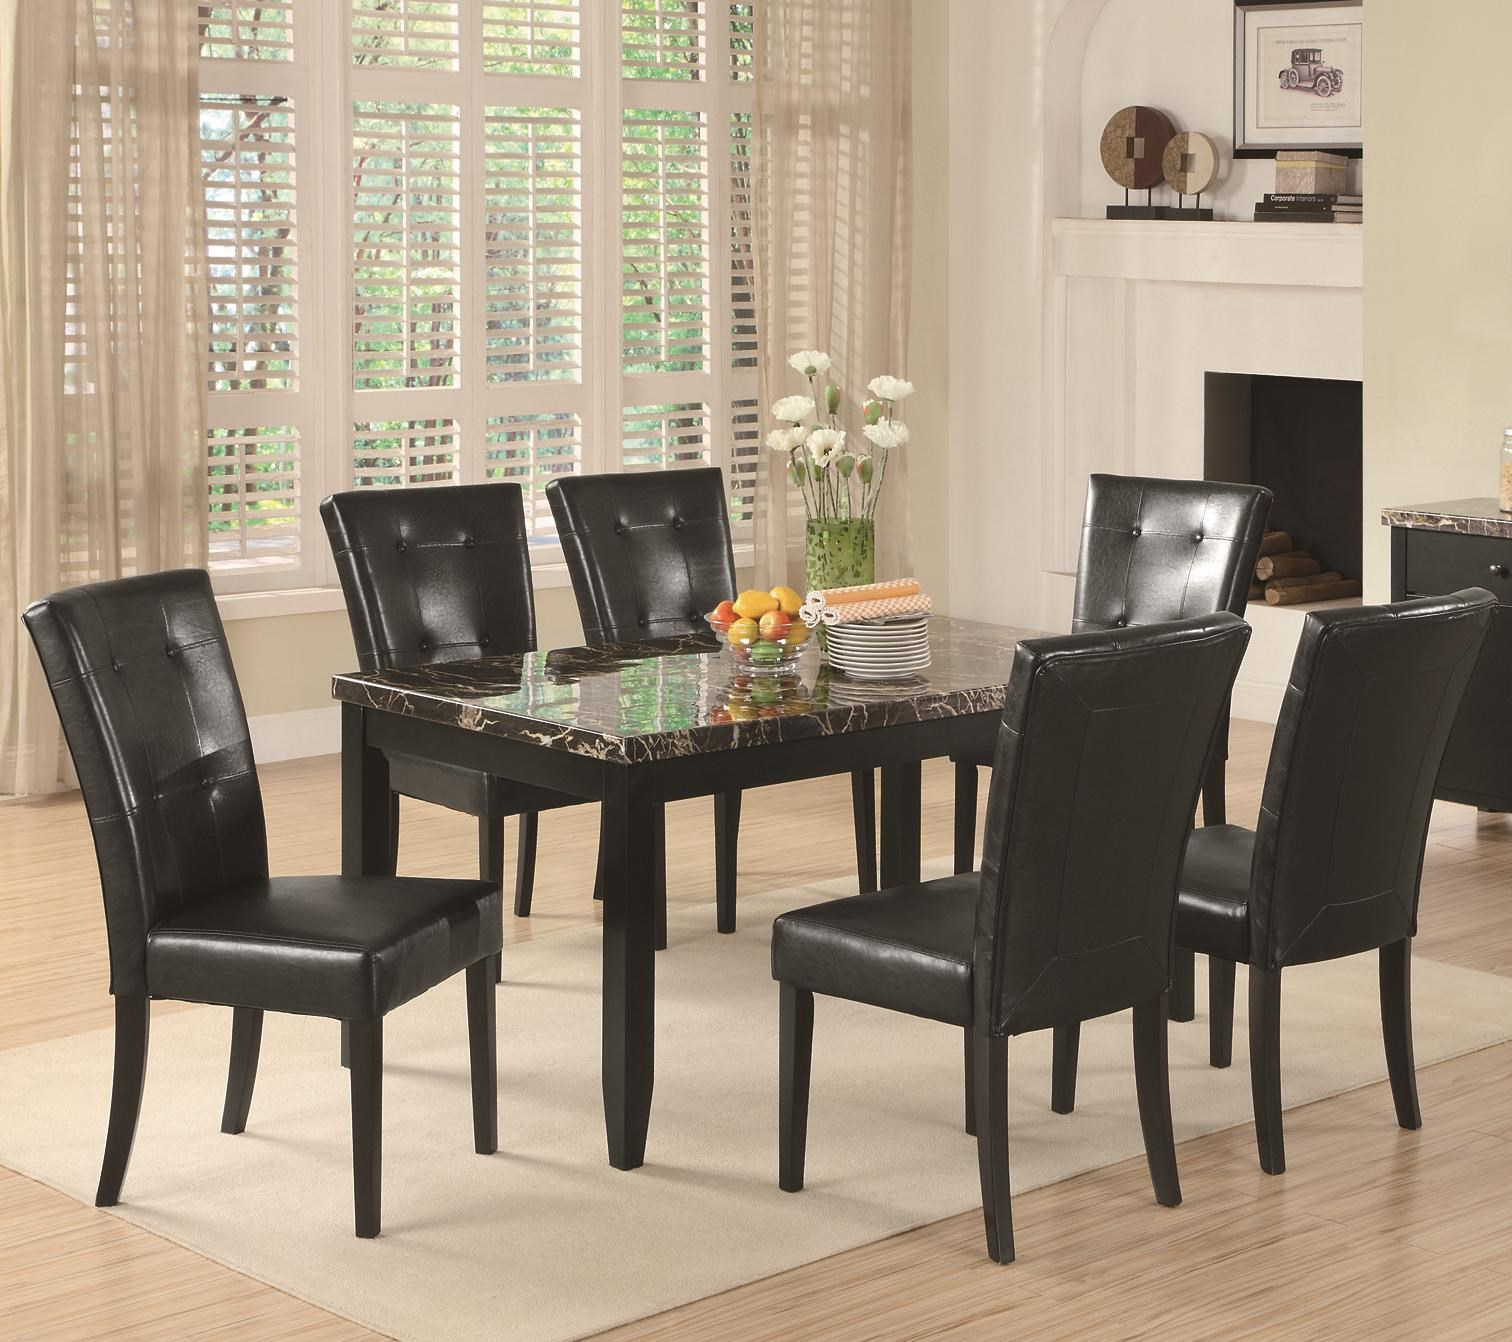 Coaster Anisa7 Piece Dining Table Set ...  sc 1 st  Value City NJ Furniture & Coaster Anisa 7 Piece Dining Table and Chairs Set | Value City ...